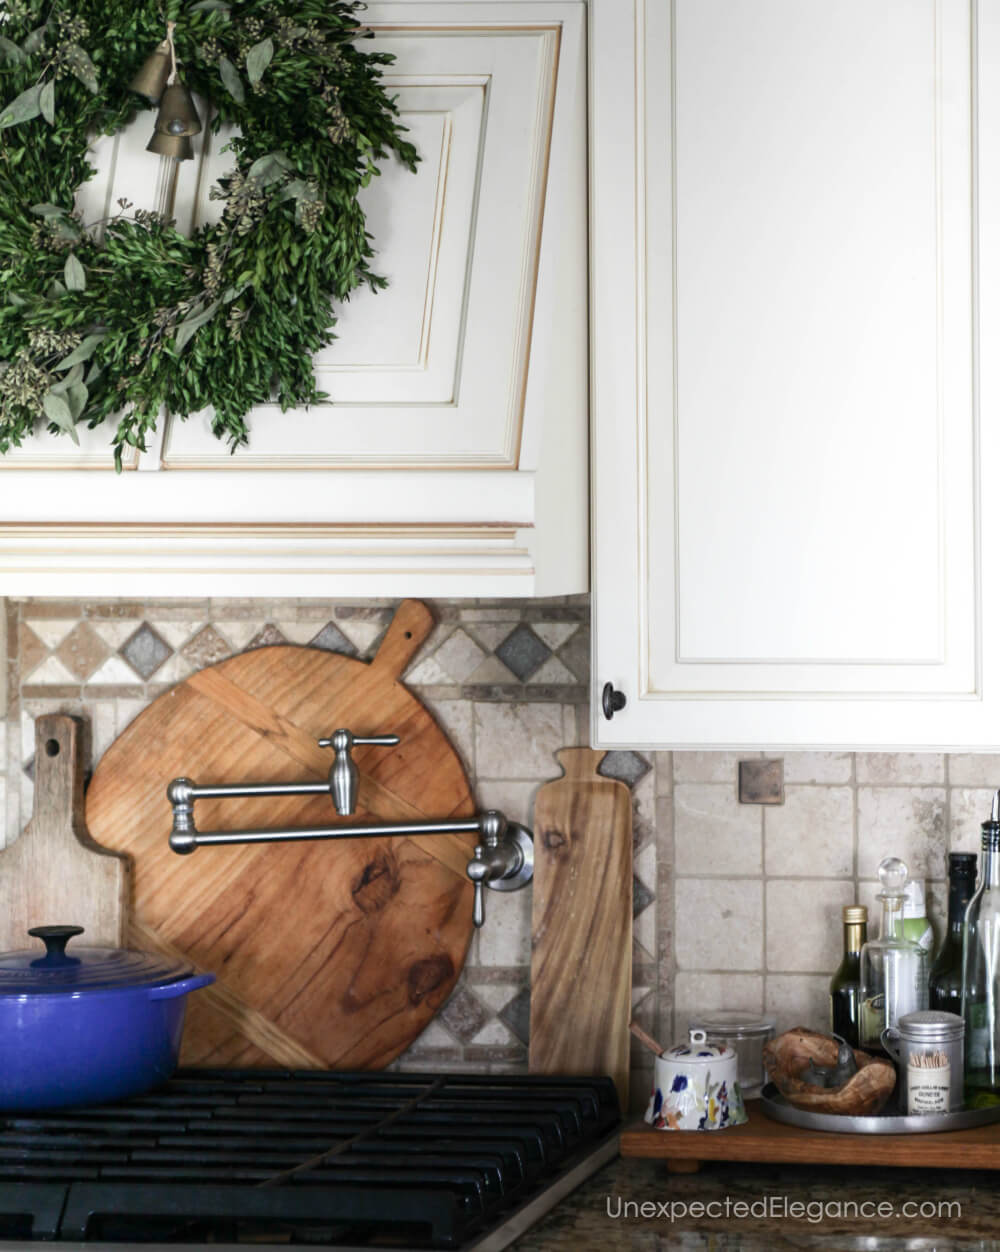 Simple holiday decor touches.